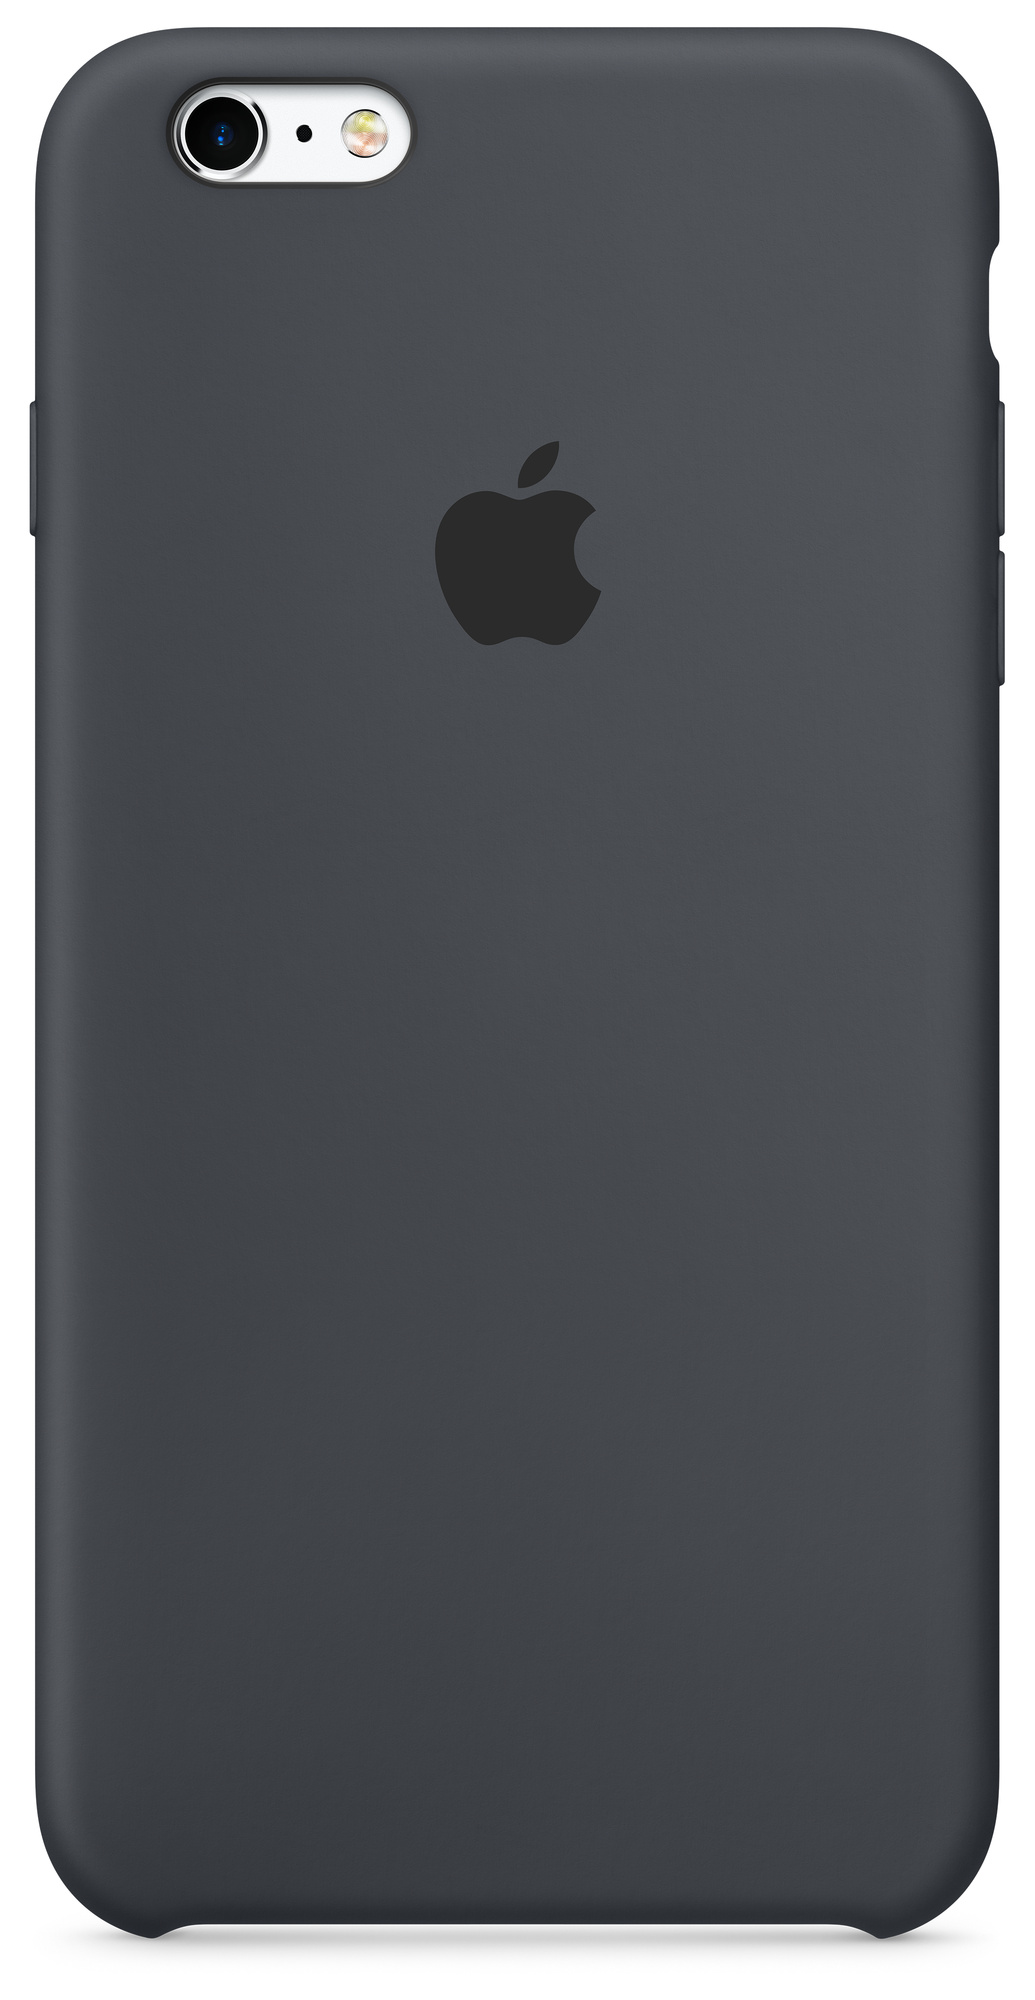 innovative design 77301 be6e9 iPhone 6 Plus / 6s Plus Silicone Case - Charcoal Grey